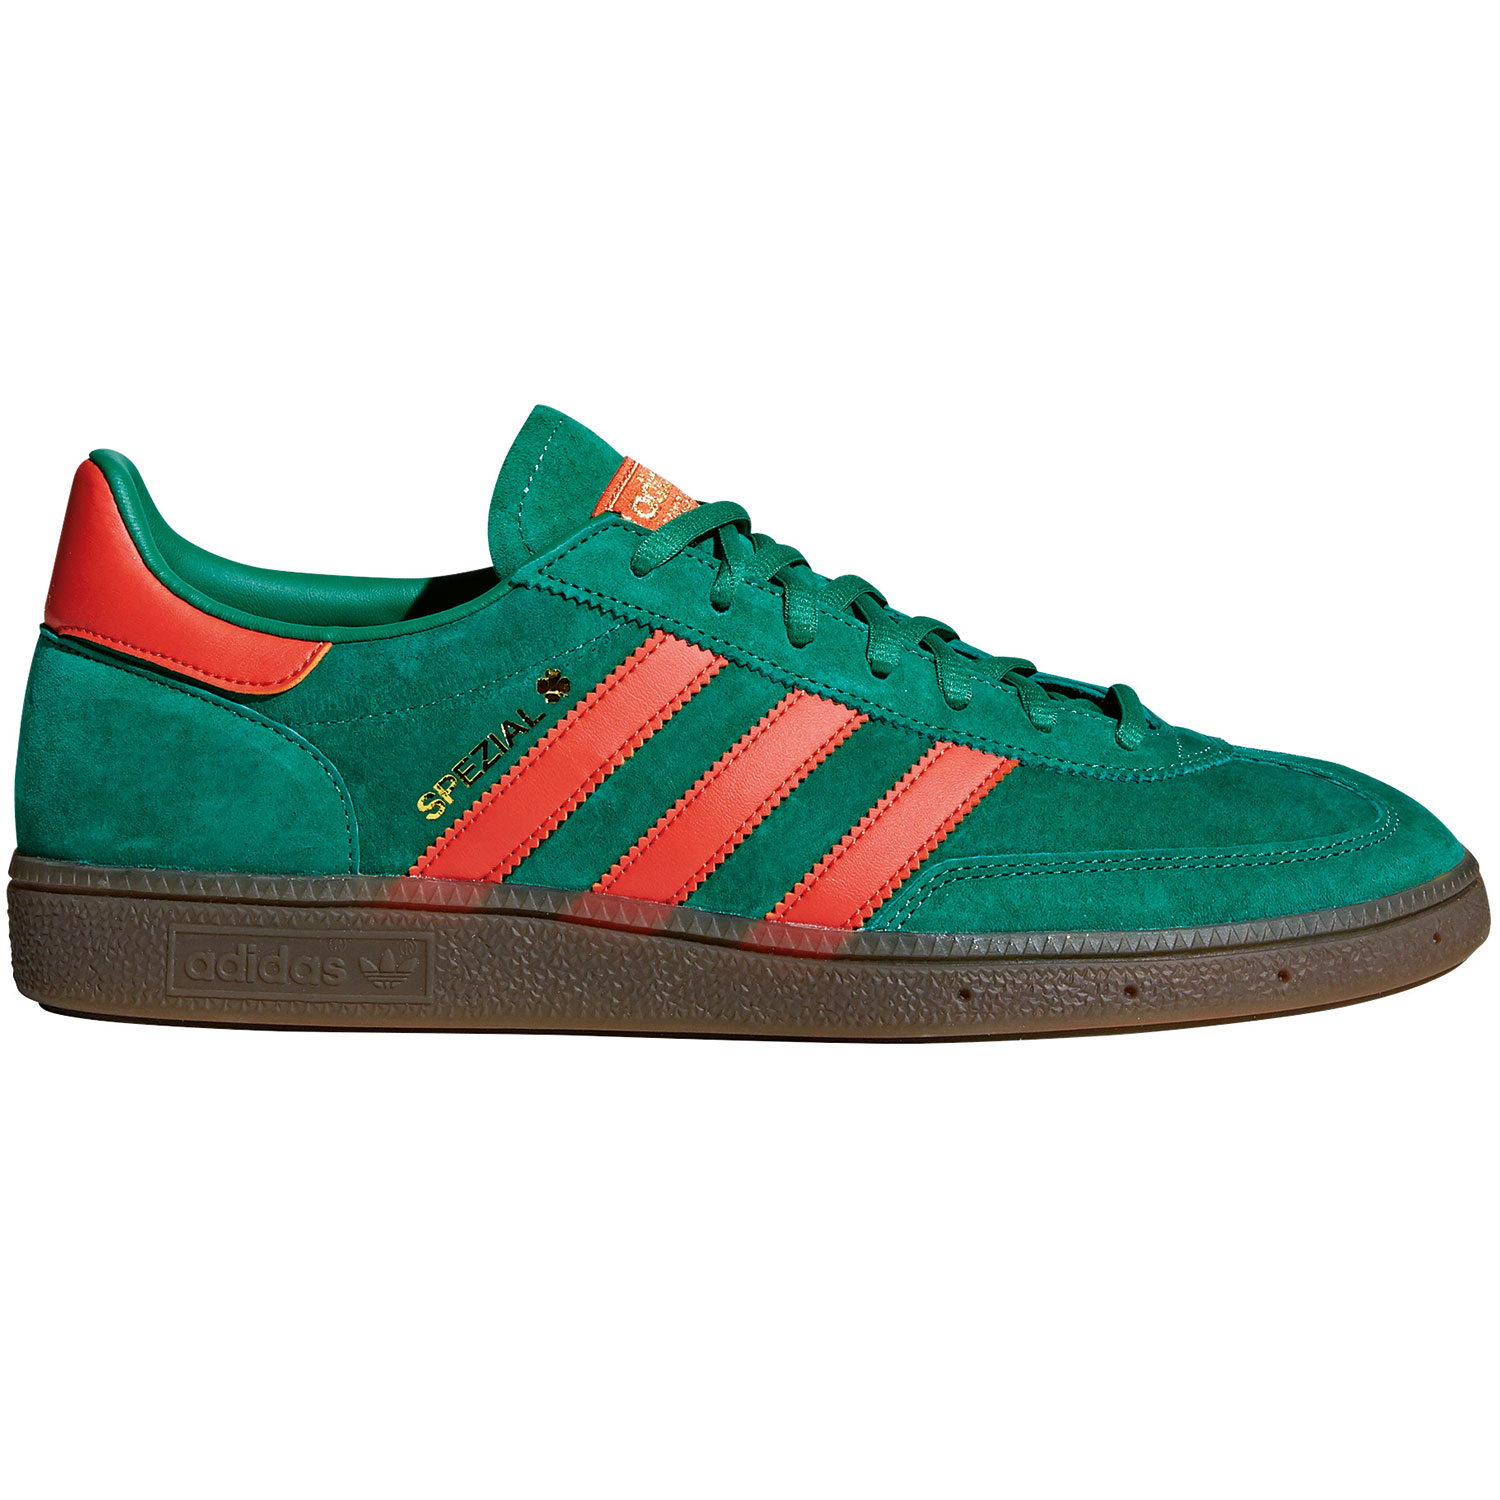 adidas Originals Handball Spezial Herren Sneaker grün orange BD7620